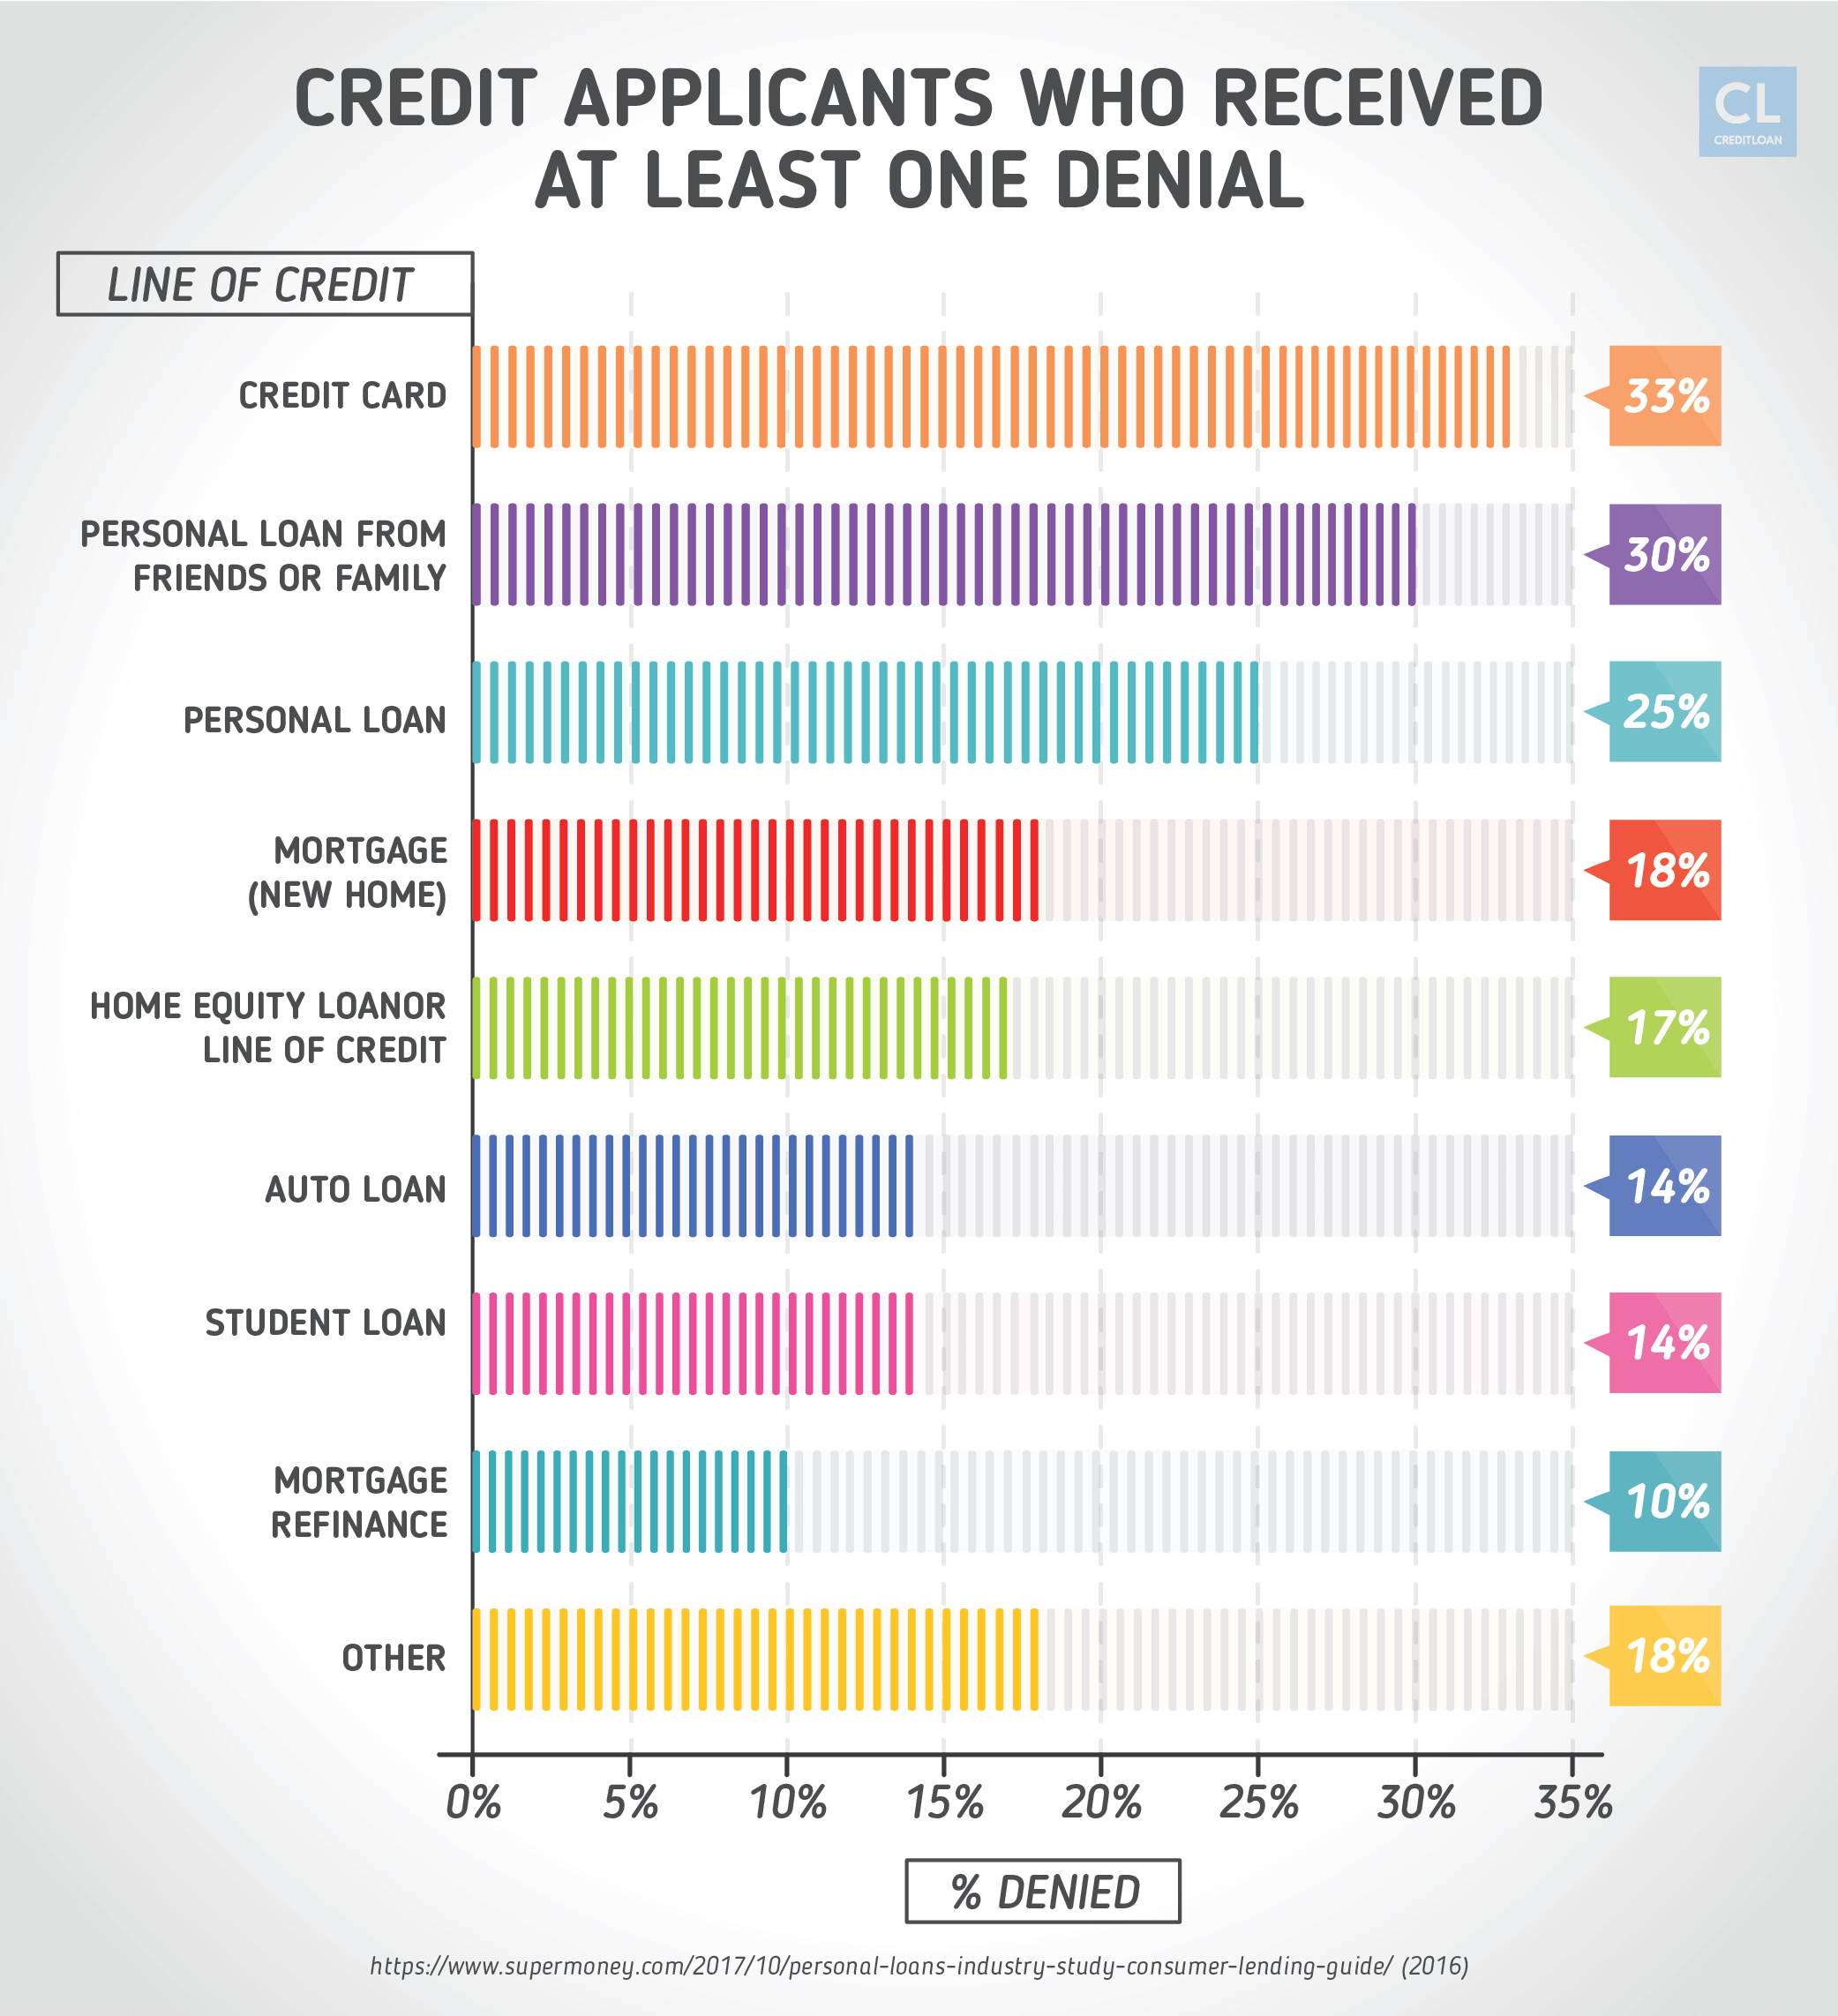 Statistics of Credit Applicants Who Received At Least One Denial